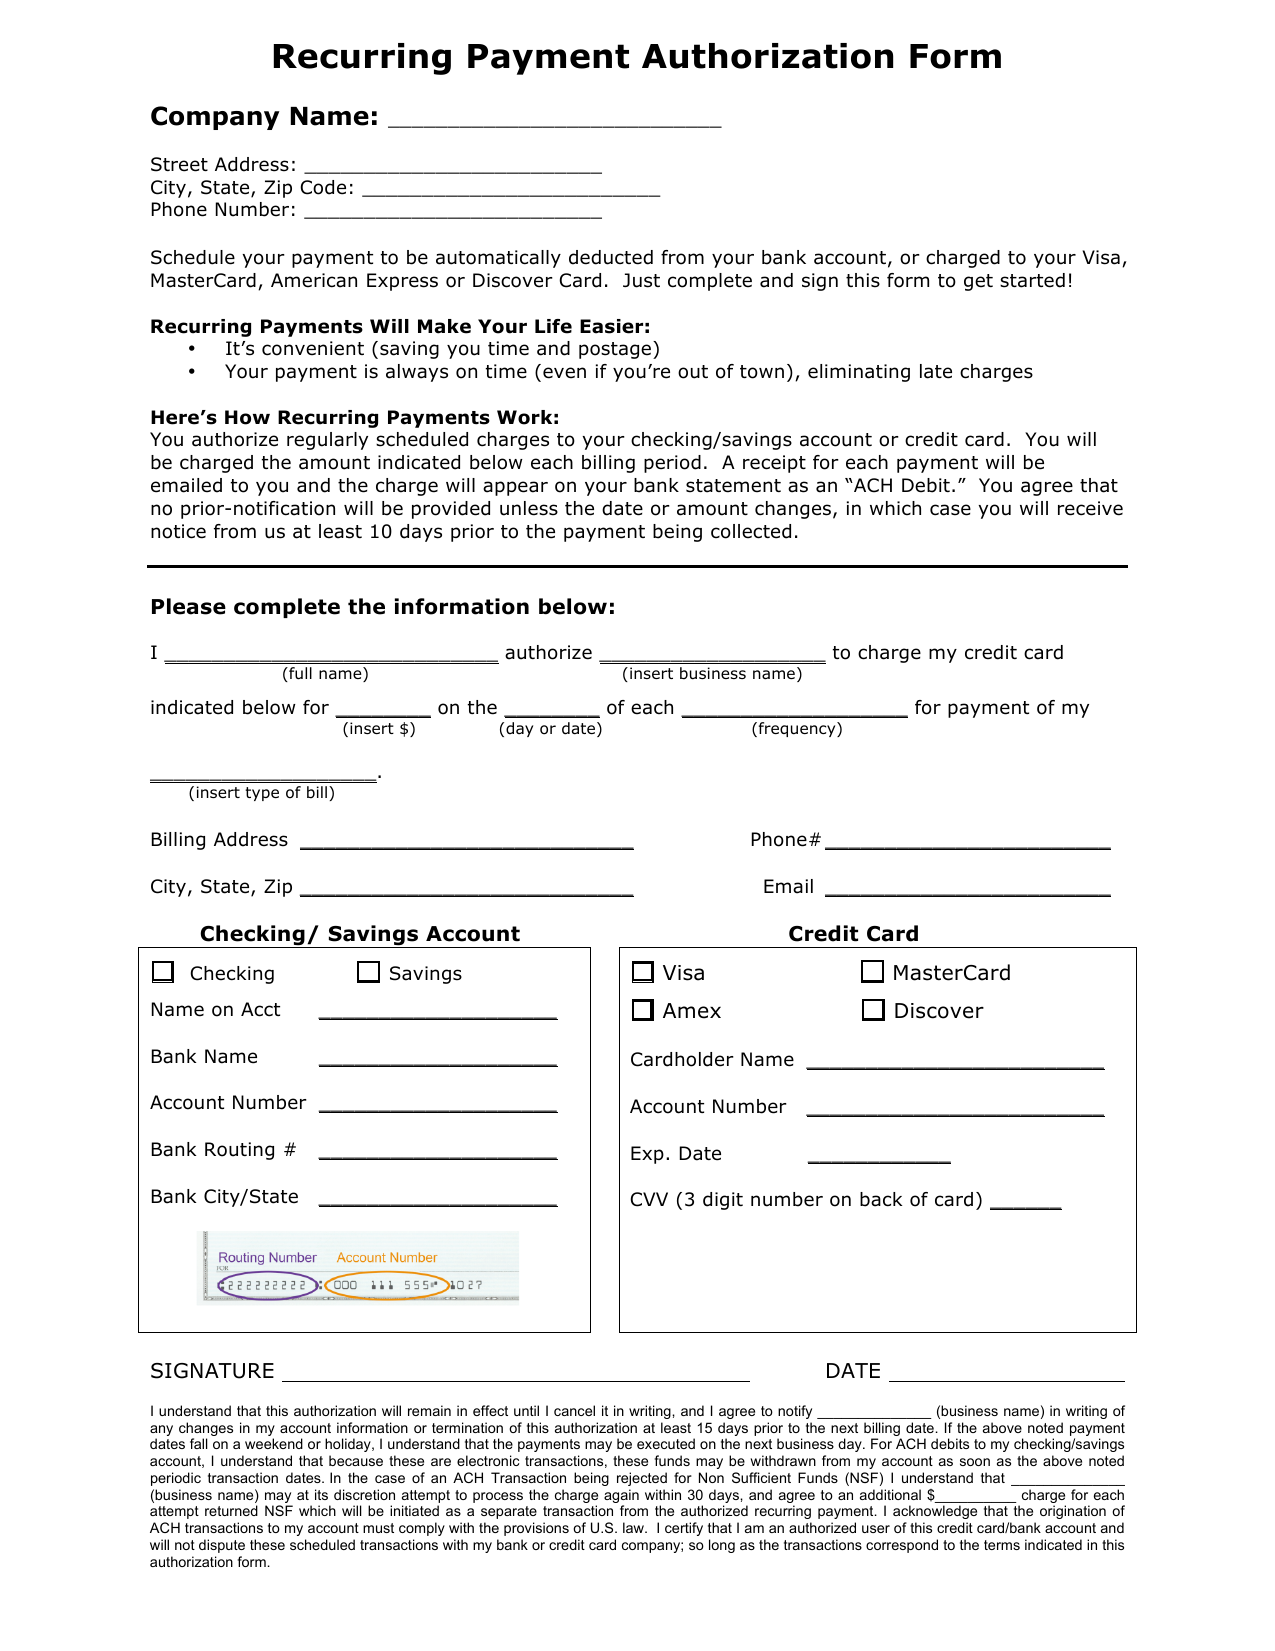 ach authorization form ach auth form one time payment jpg